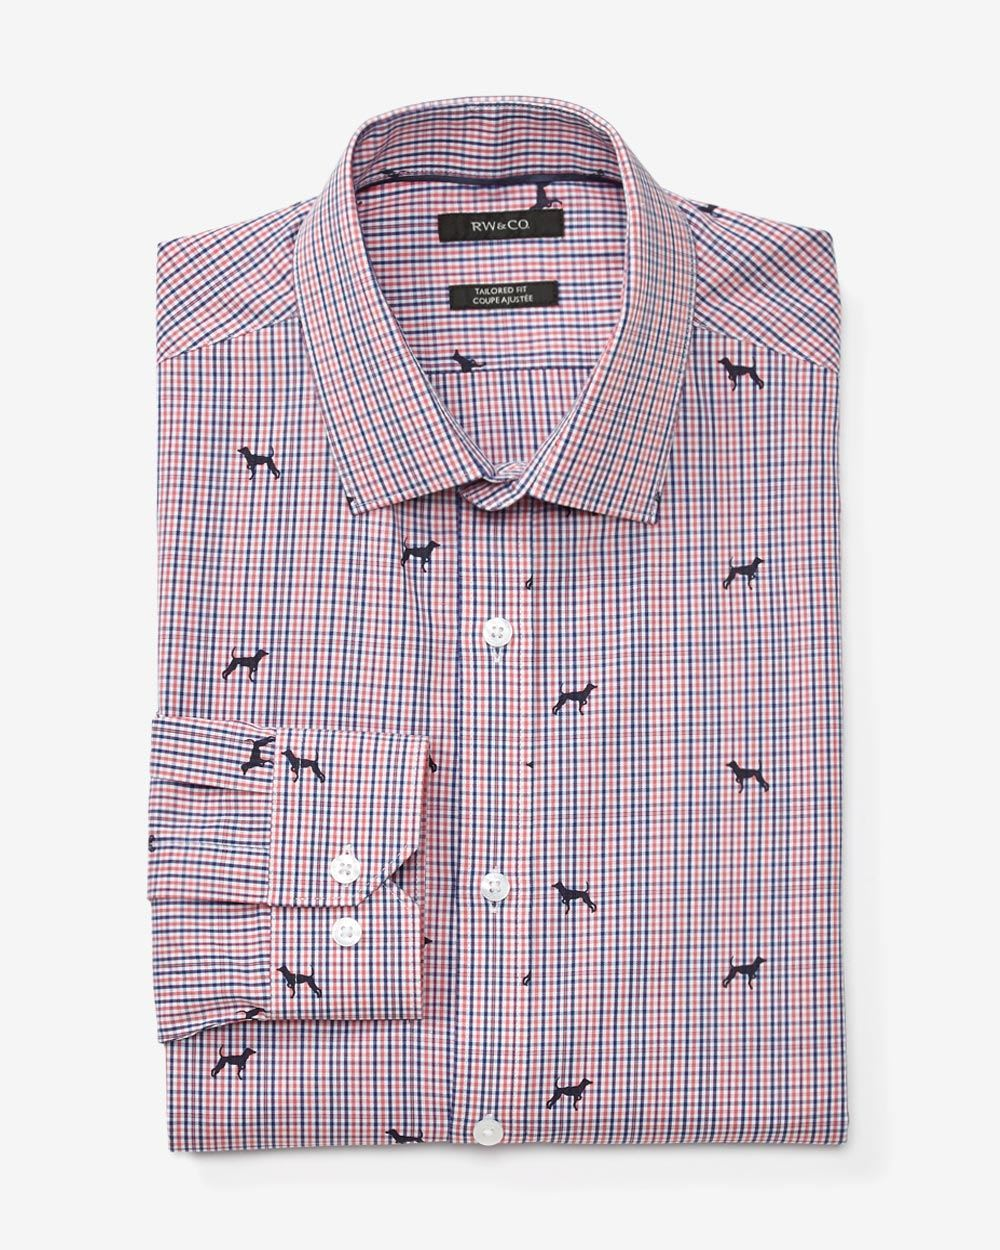 Tailored fit dress shirt with dog print check rw co for Tailoring a dress shirt